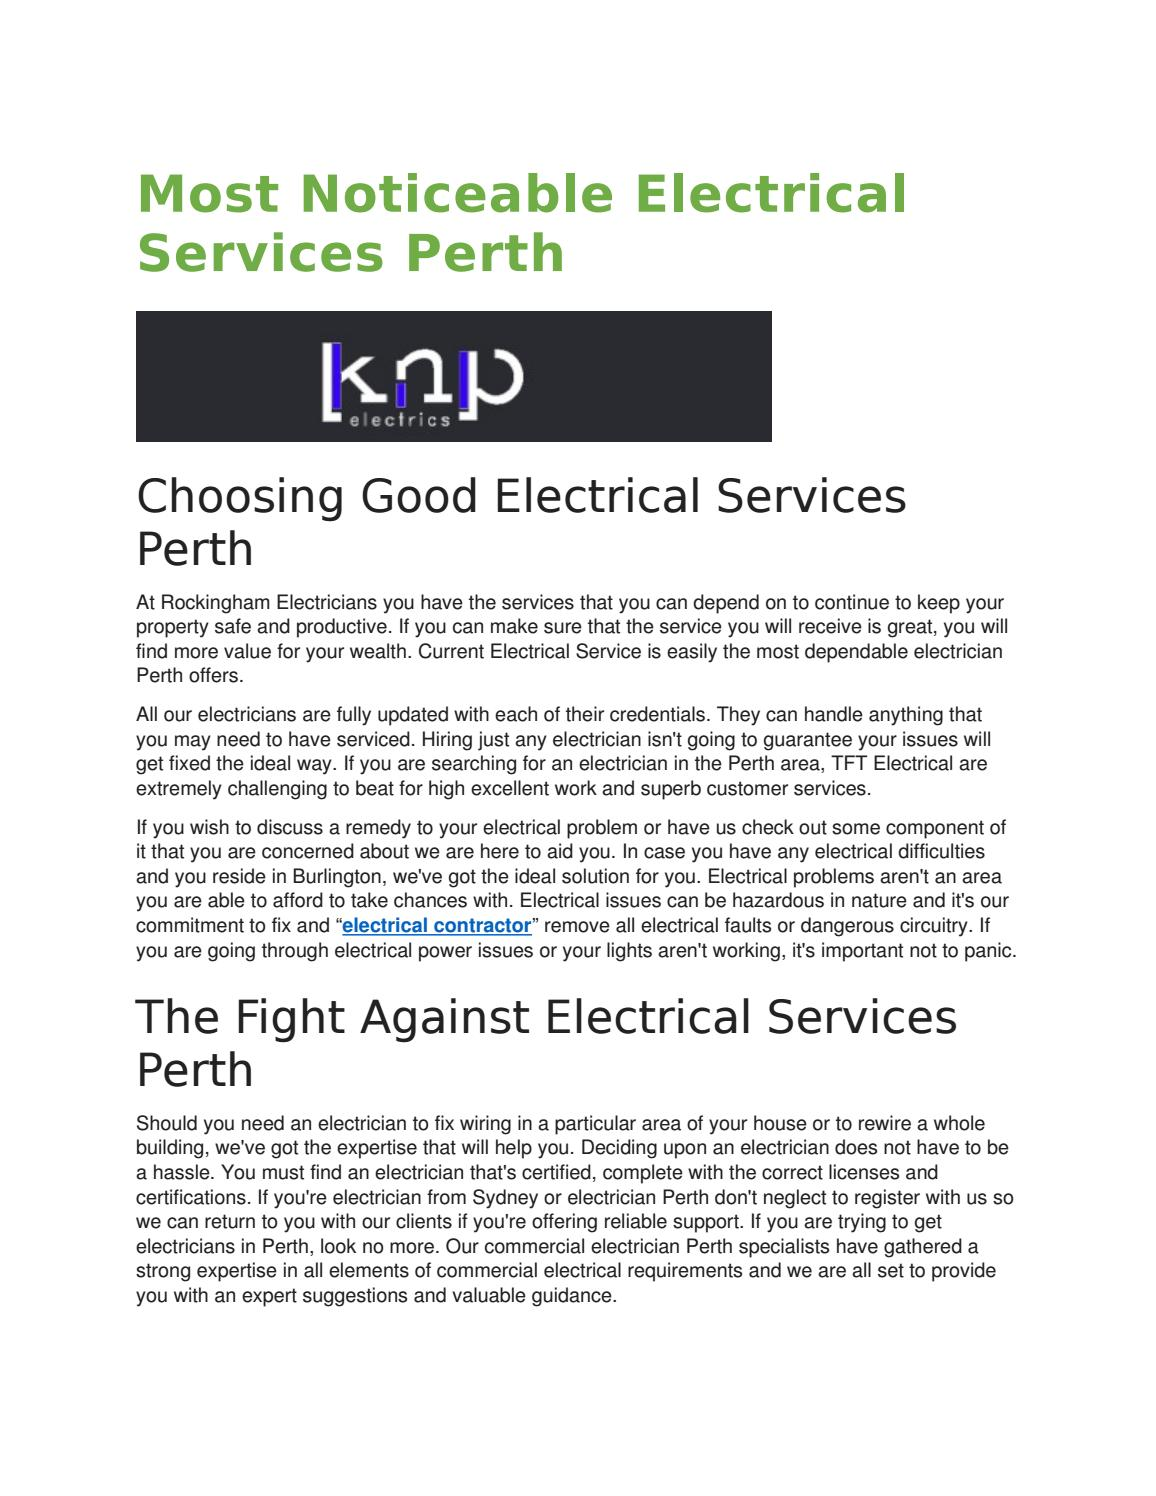 Most noticeable electrical services perth by beckyrblauvelt - issuu